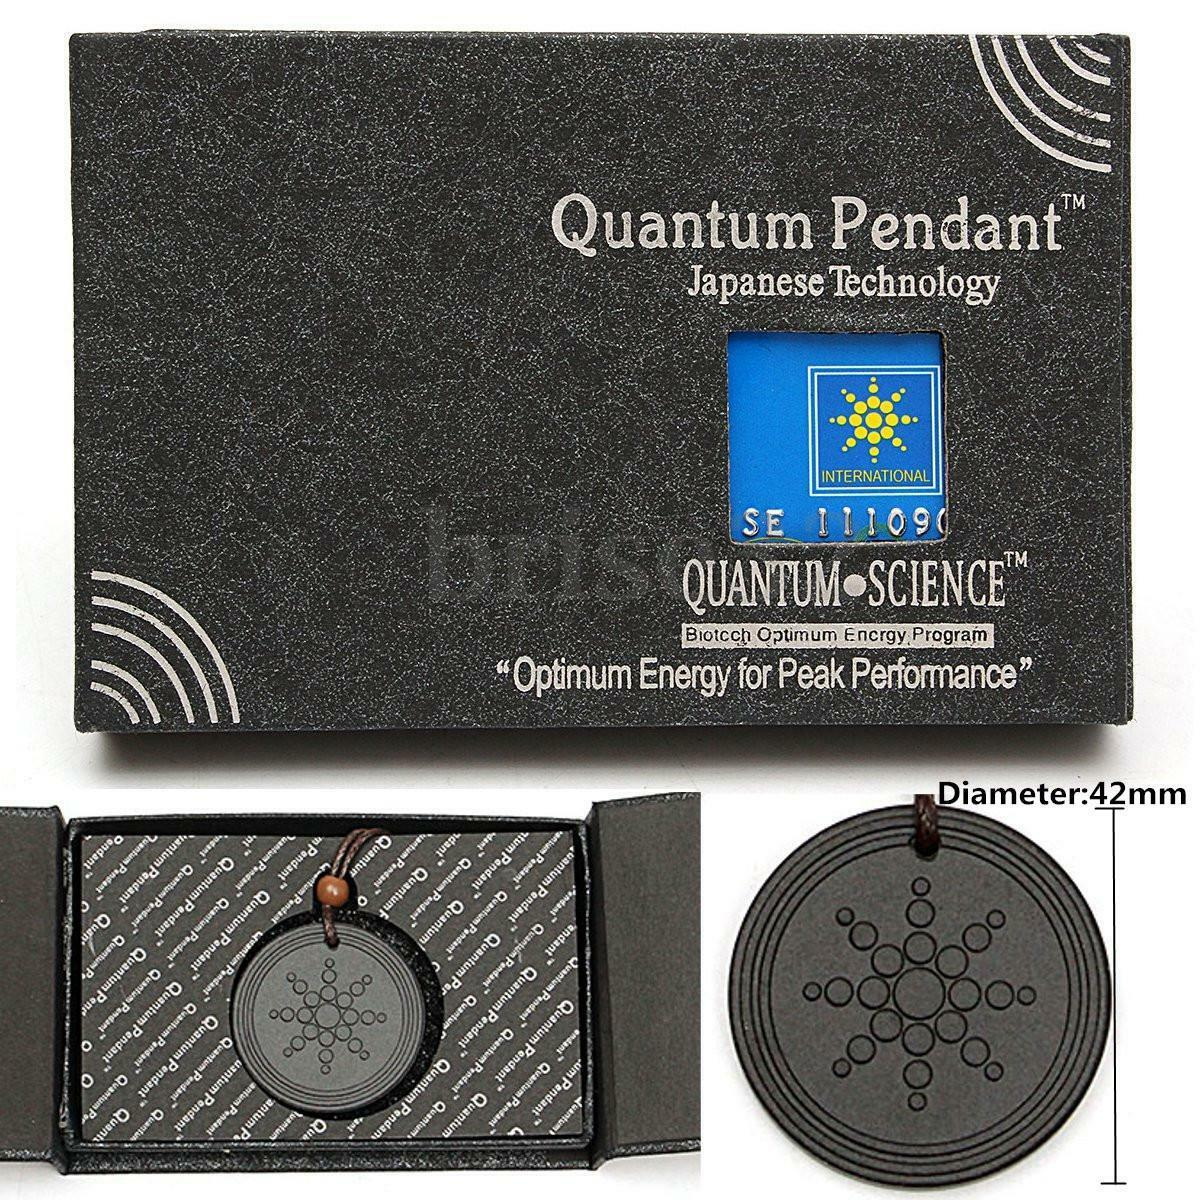 1pcs quantum pendant necklace scalar orgon energy neg ions emf picture 1 of 8 aloadofball Choice Image